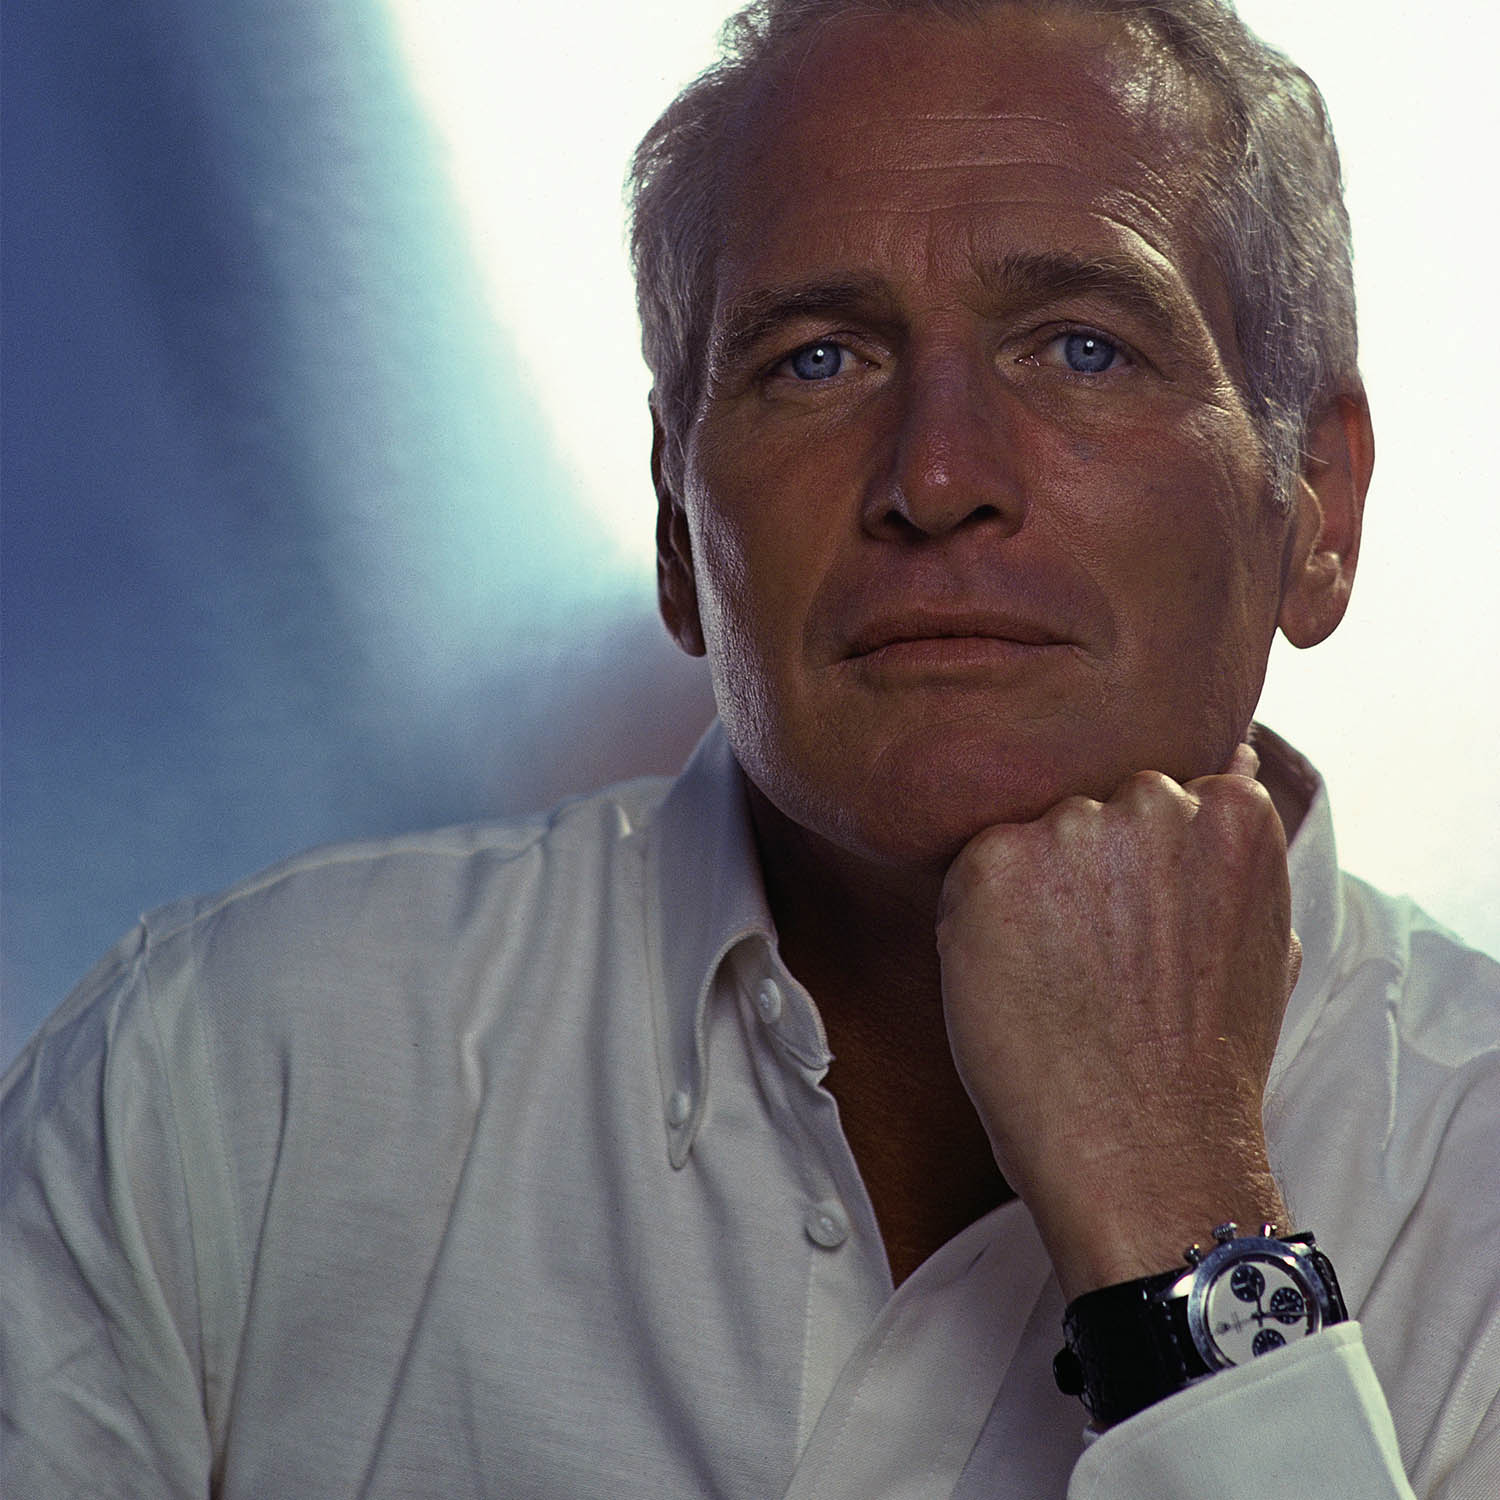 Paul Newman's Paul Newman Rolex Daytona - phillips New York Auction - Credits Douglas Kirkland - Corbis via Getty Images